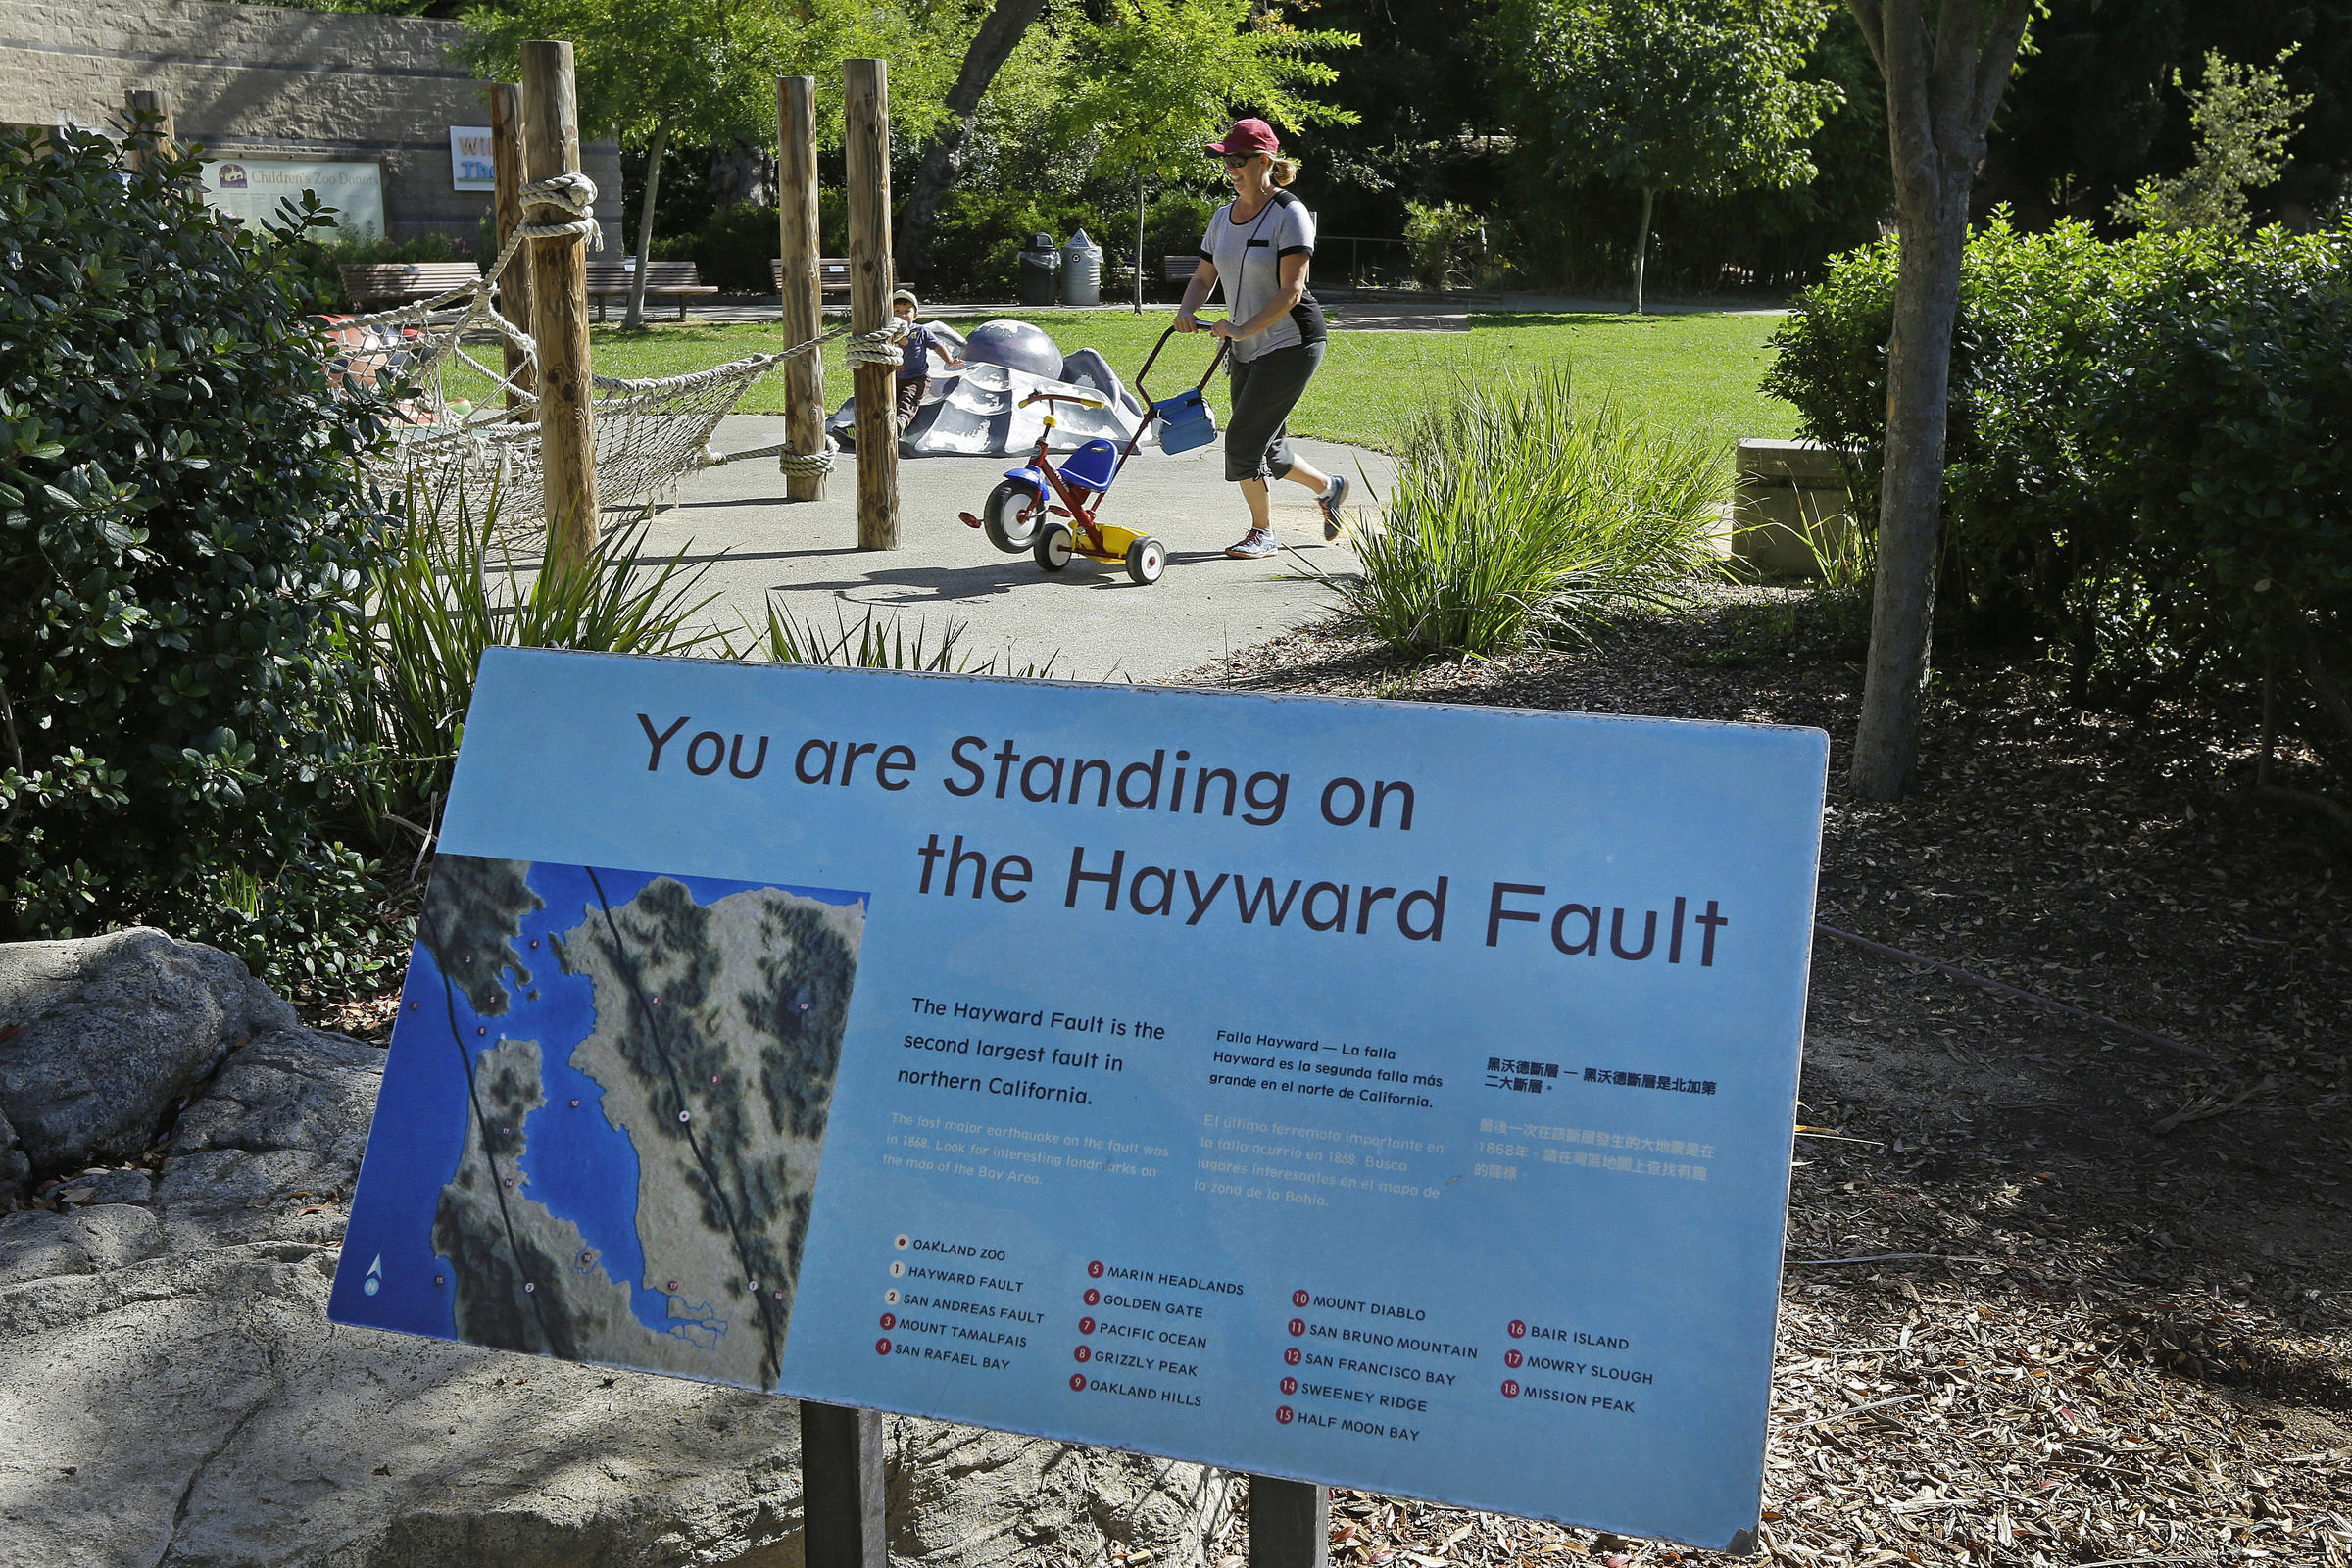 Next quake on Hayward Fault would be disastrous, researchers say